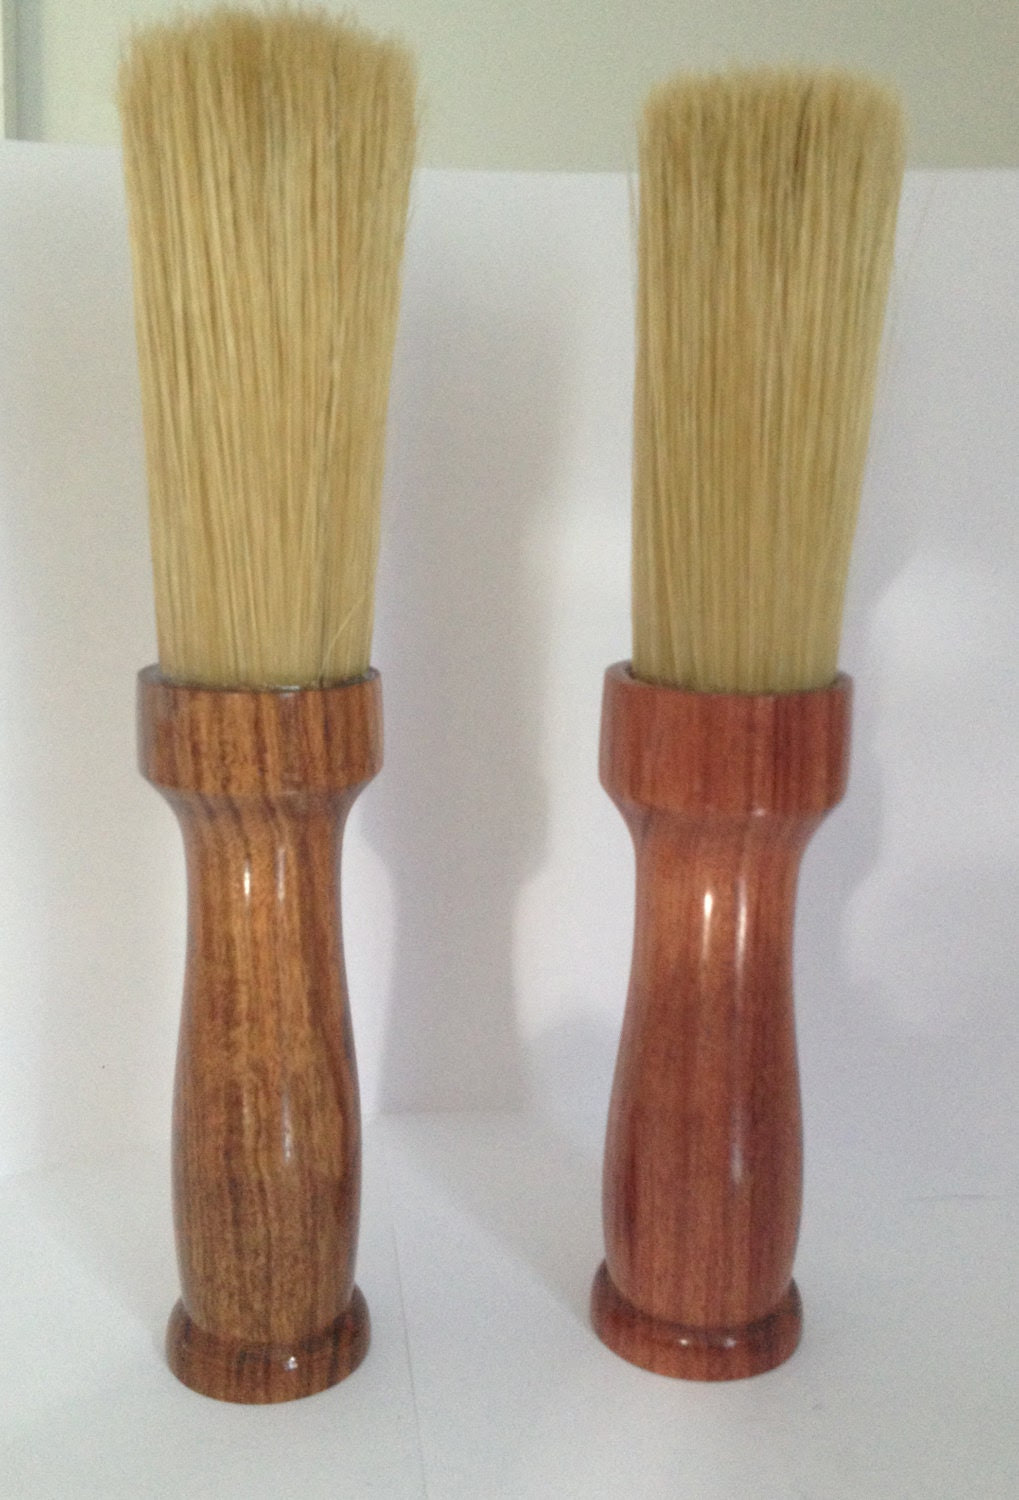 Neck duster / shop brush - DoubleSharpWoodwork